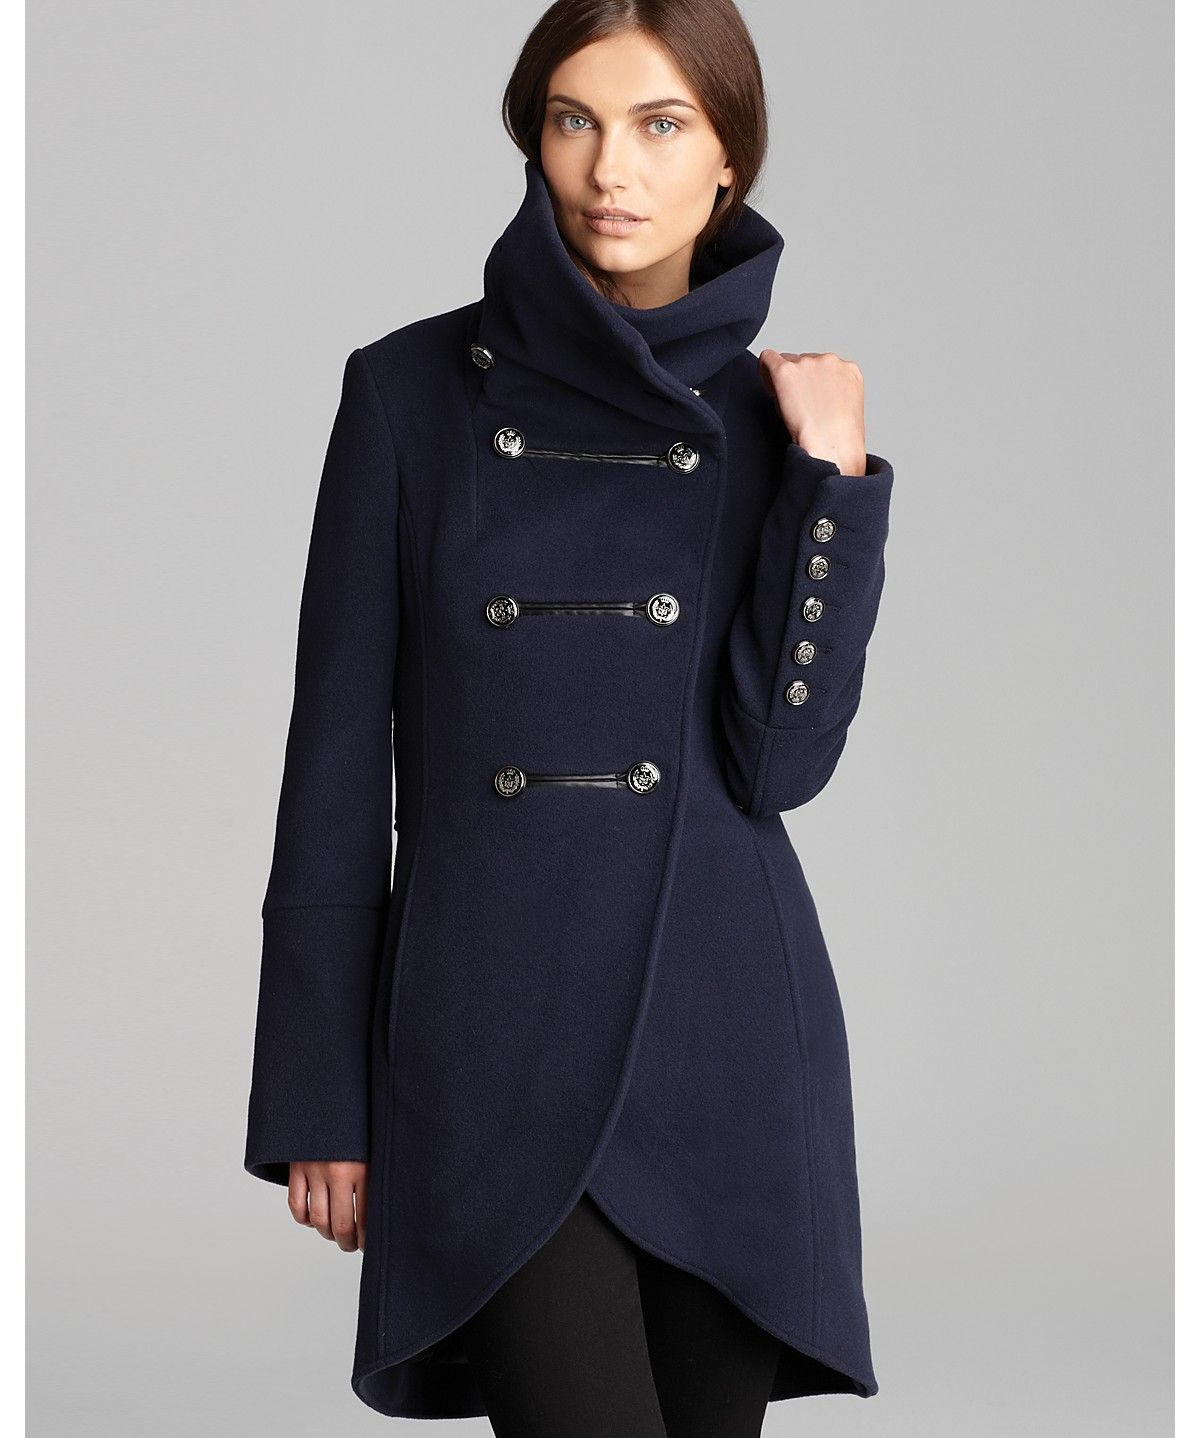 Mackage Coat - Diana Military Wool | Bloomingdale's. I NEED THIS ...